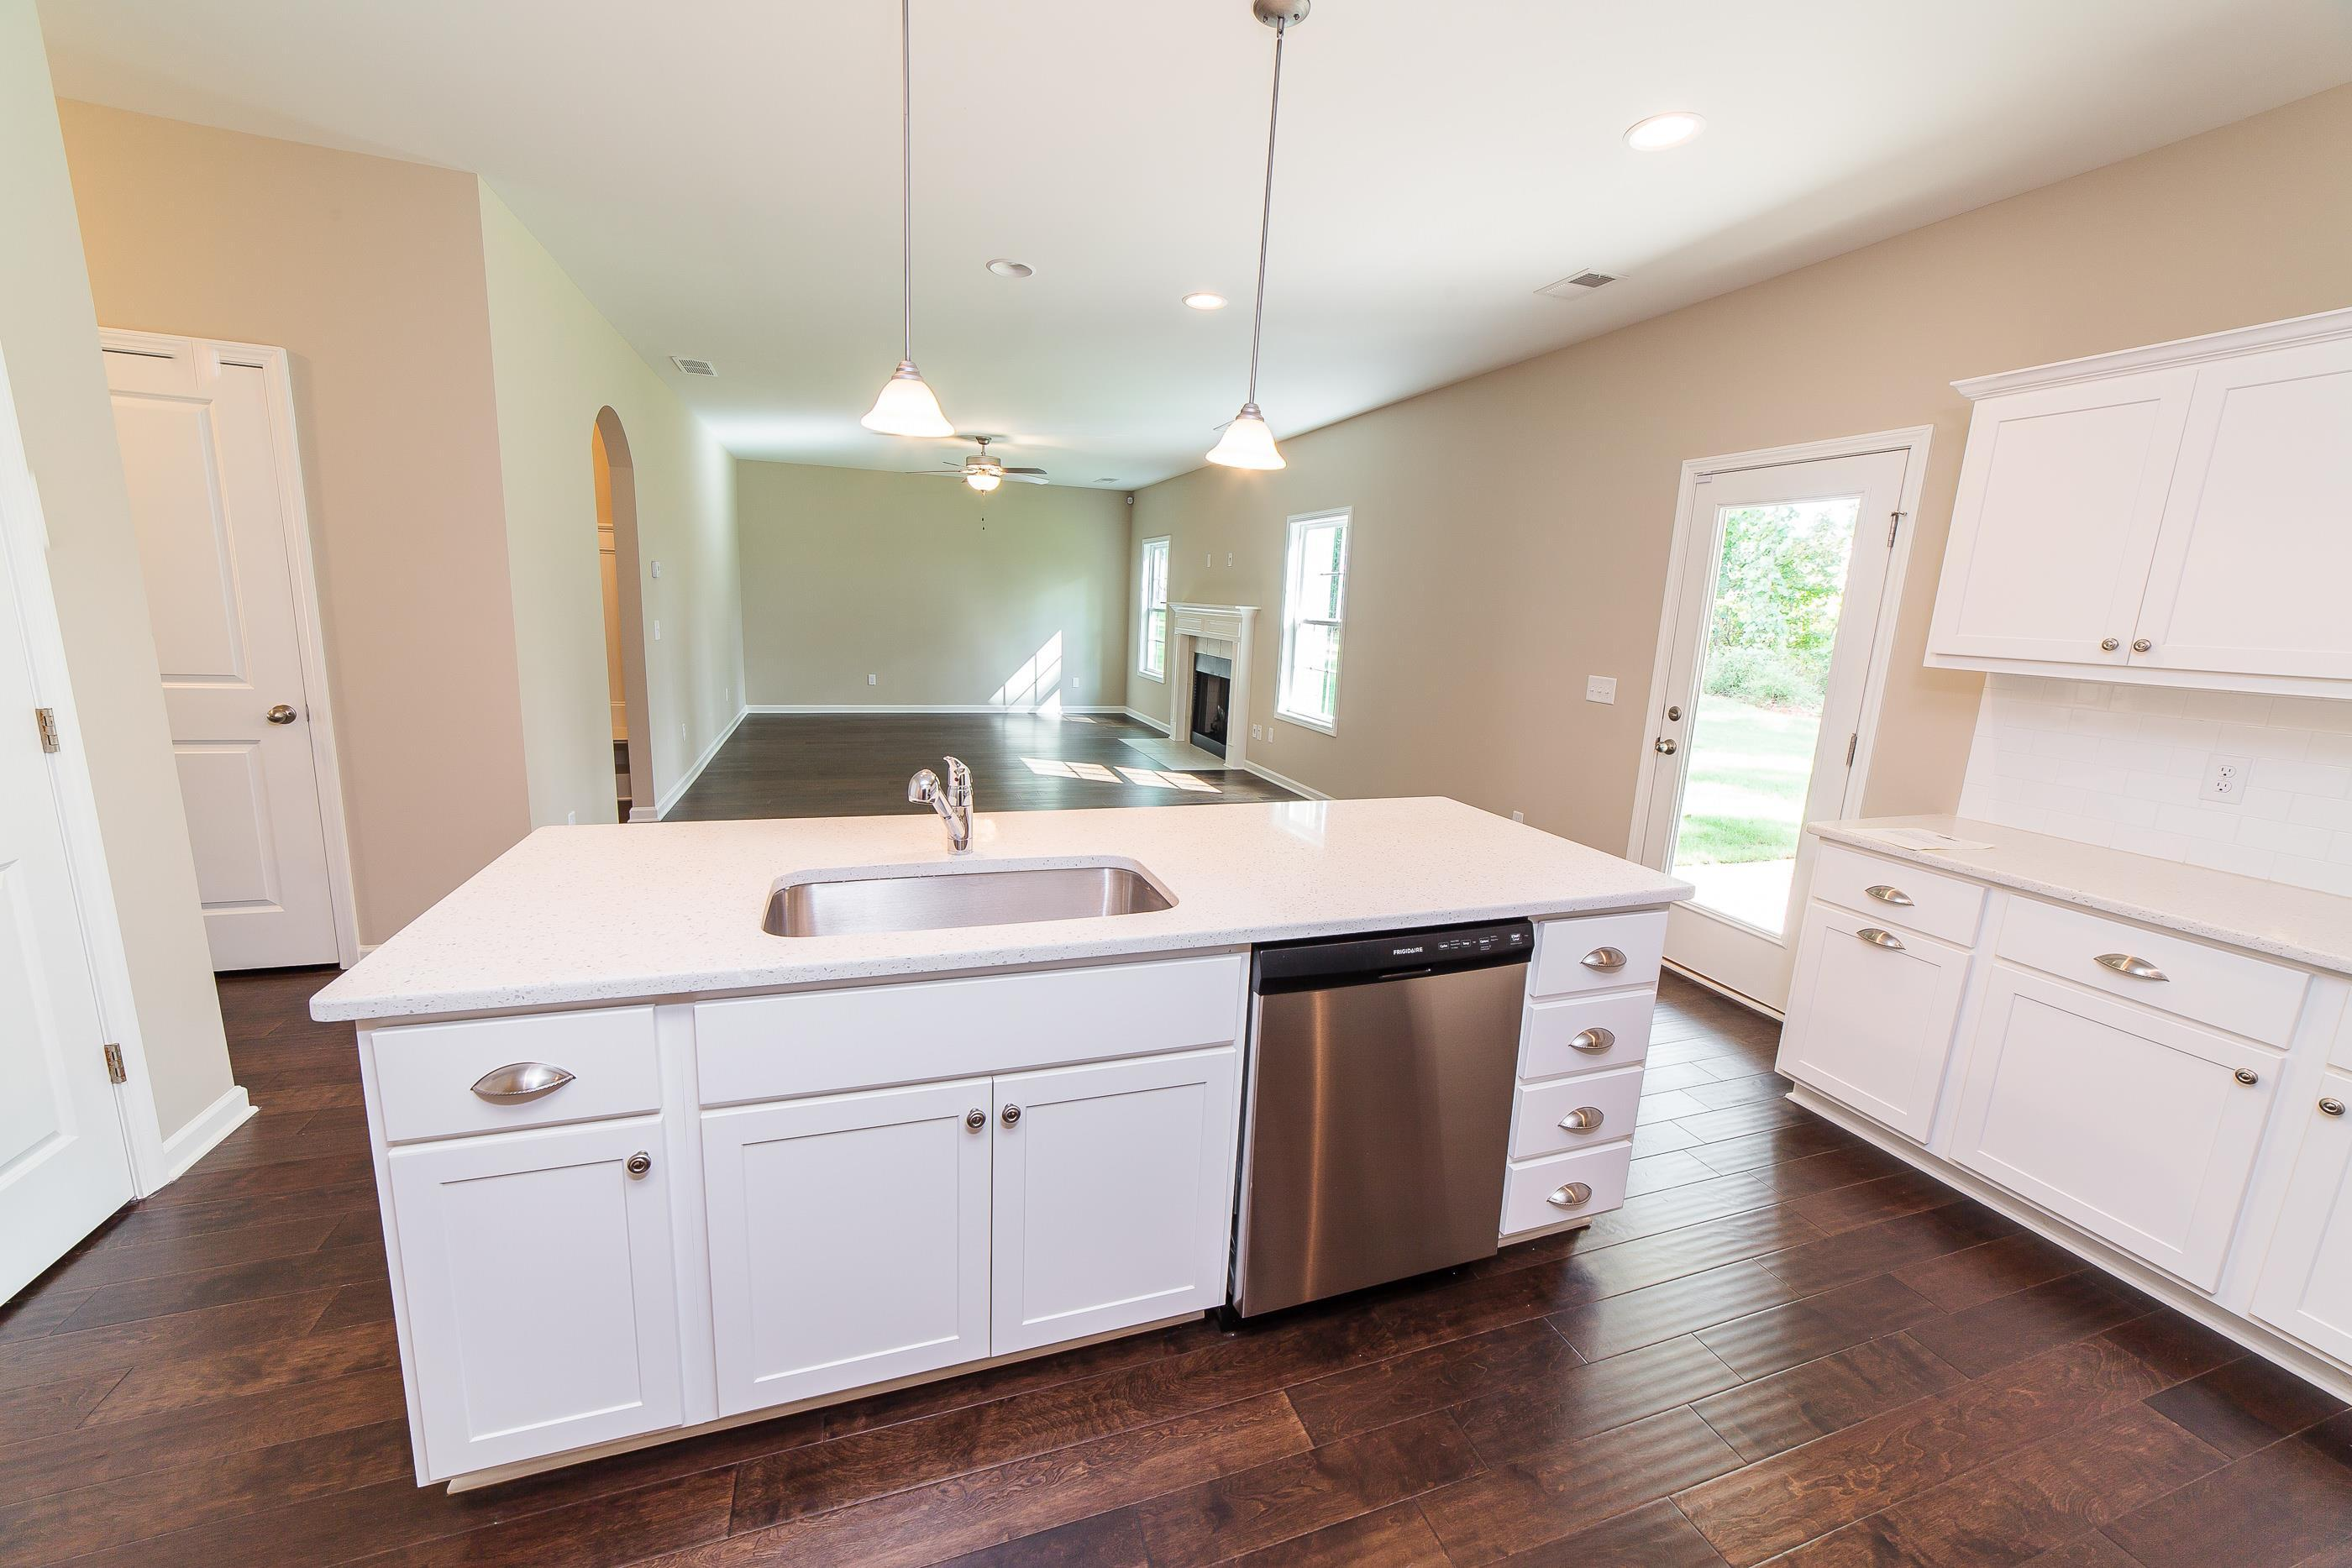 Kitchen featured in the Delilah By Hughston Homes in Macon, GA